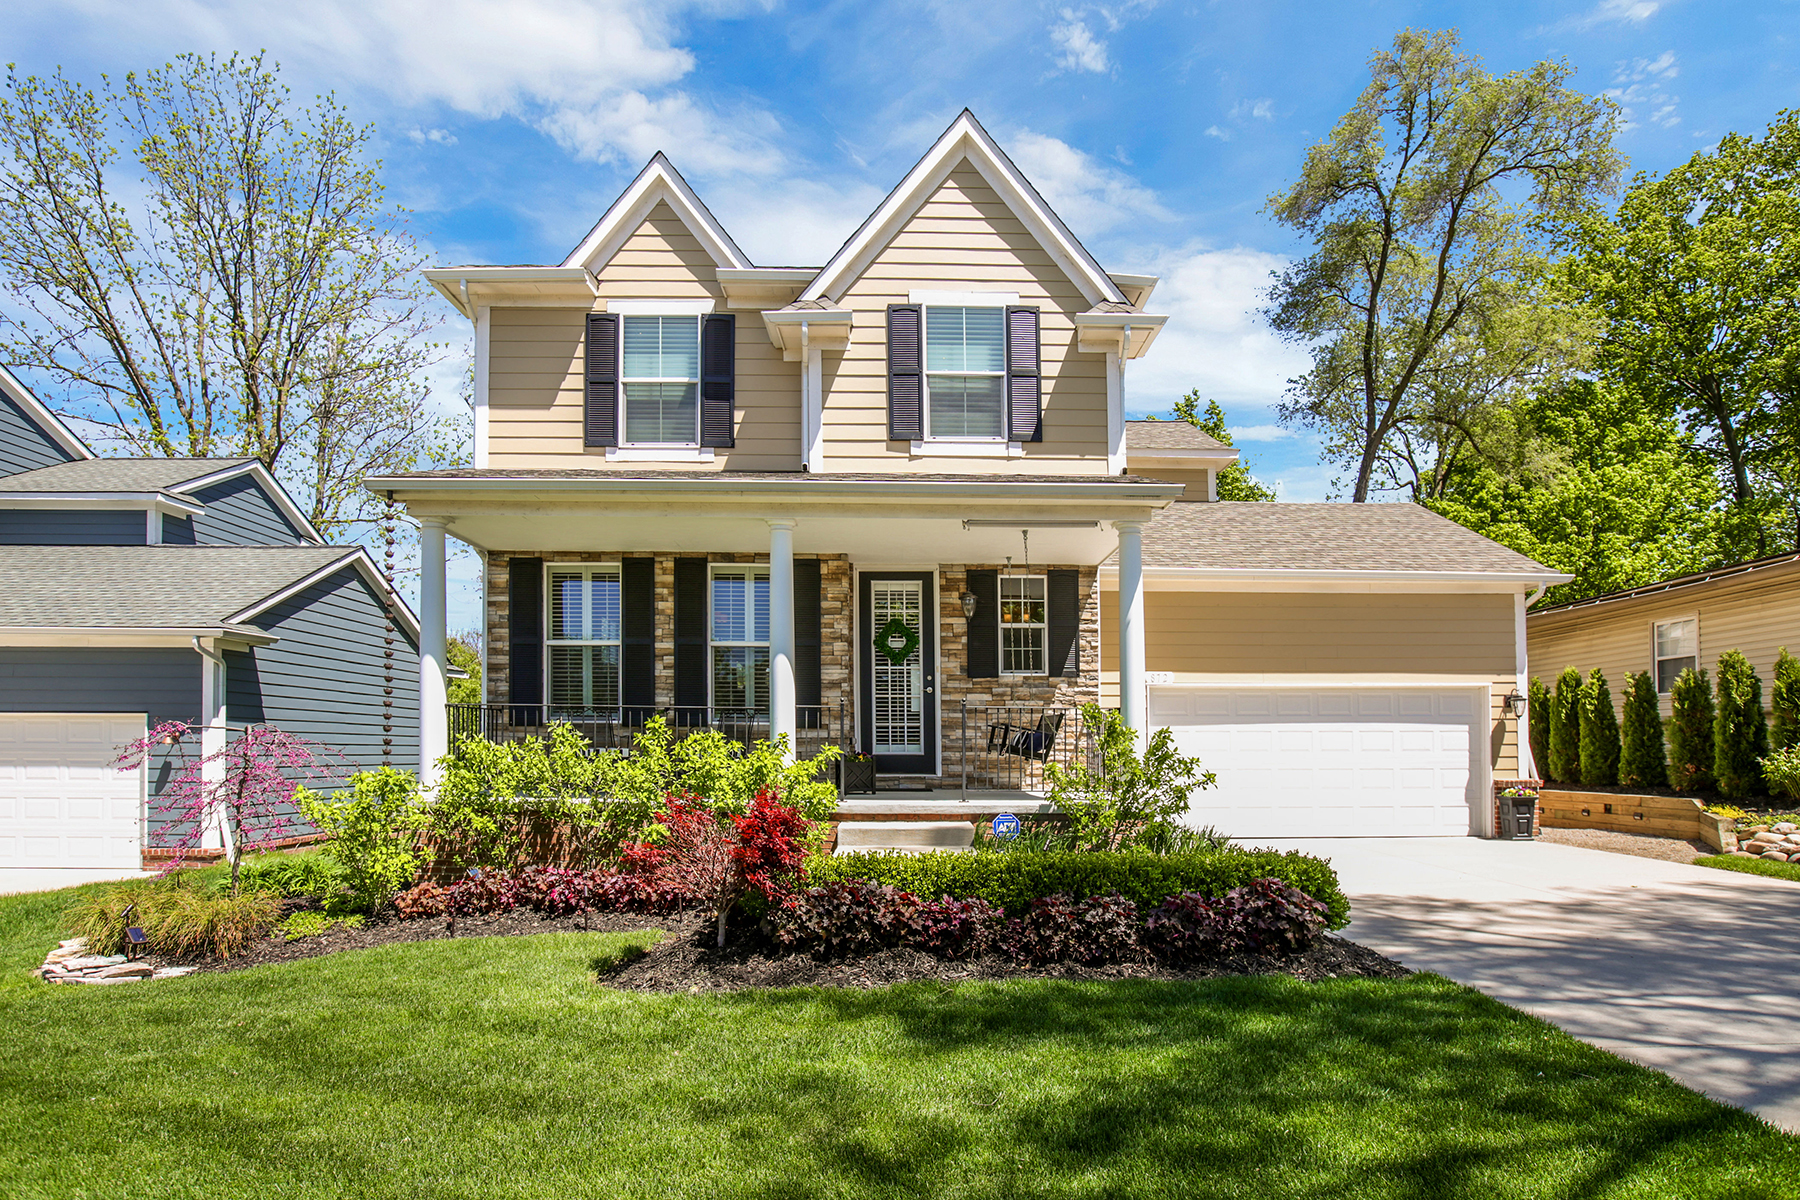 Single Family Homes for Sale at Northville 872 N Center Street Northville, Michigan 48167 United States